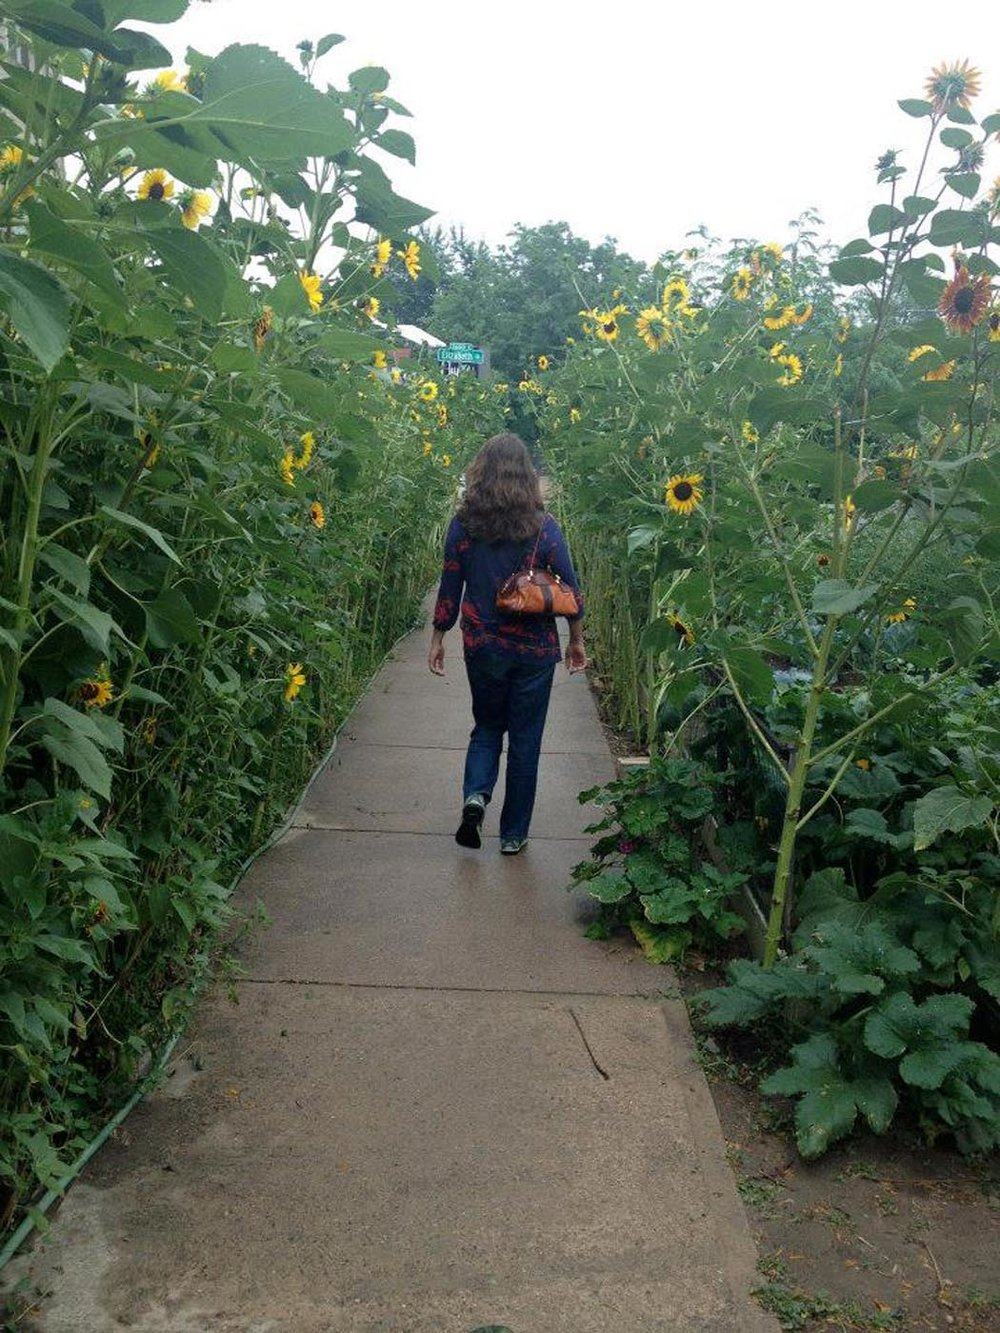 Sunflowers along Elizabeth Street in Denver. Photo courtesy of Elizabeth O'Herrin